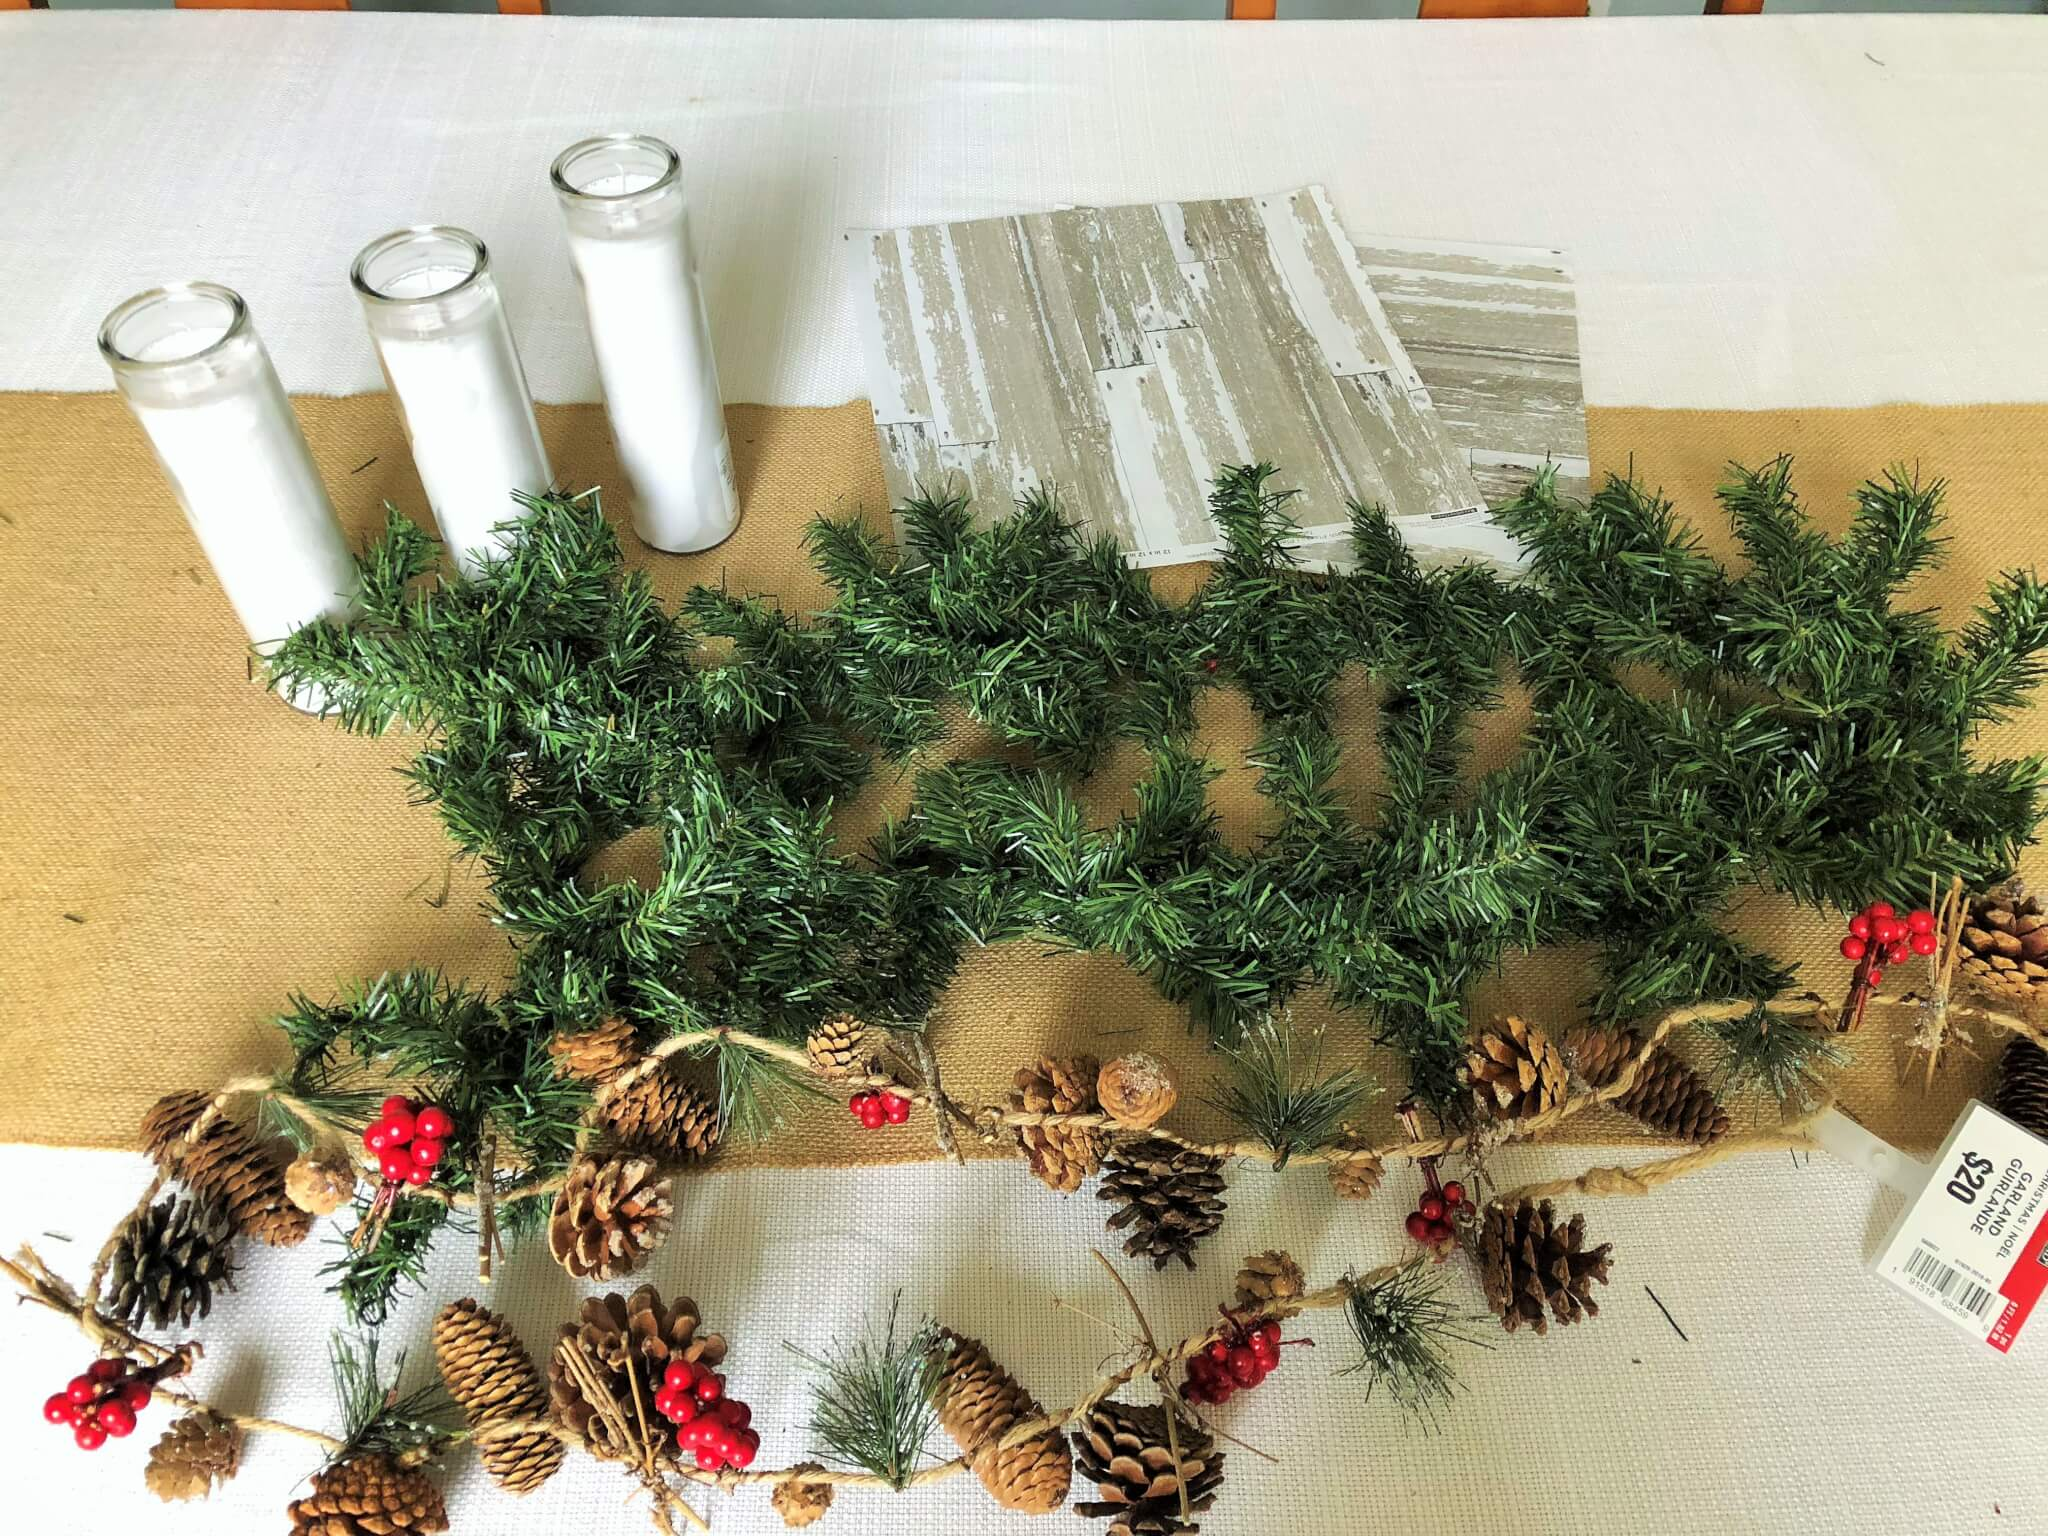 Christmas Centerpiece for Under $20 with items from Dollar Tree and Michaels